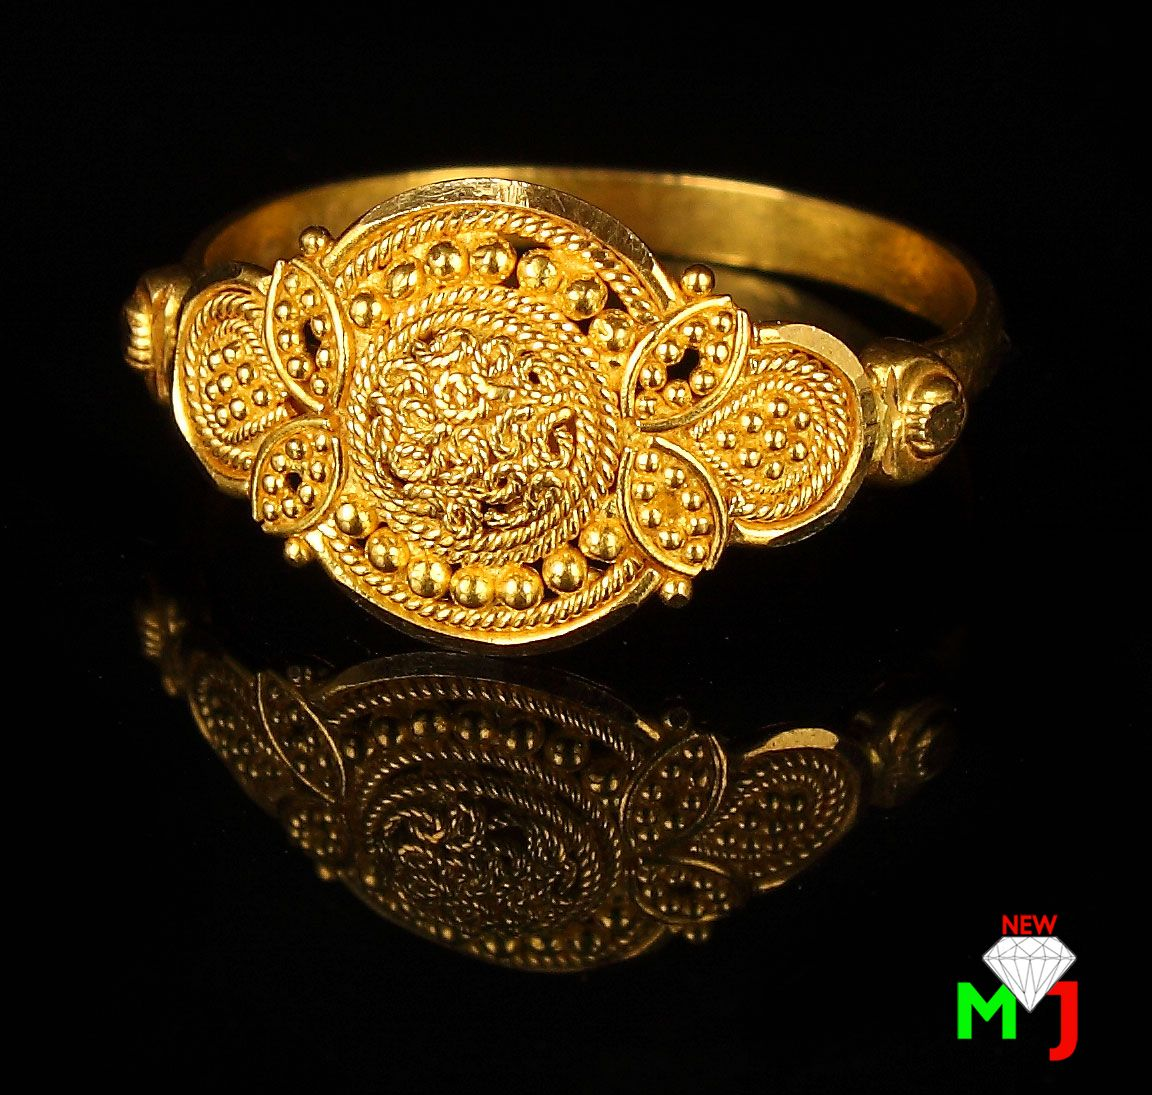 Beautiful gold ring made by new maria jewellers www ...